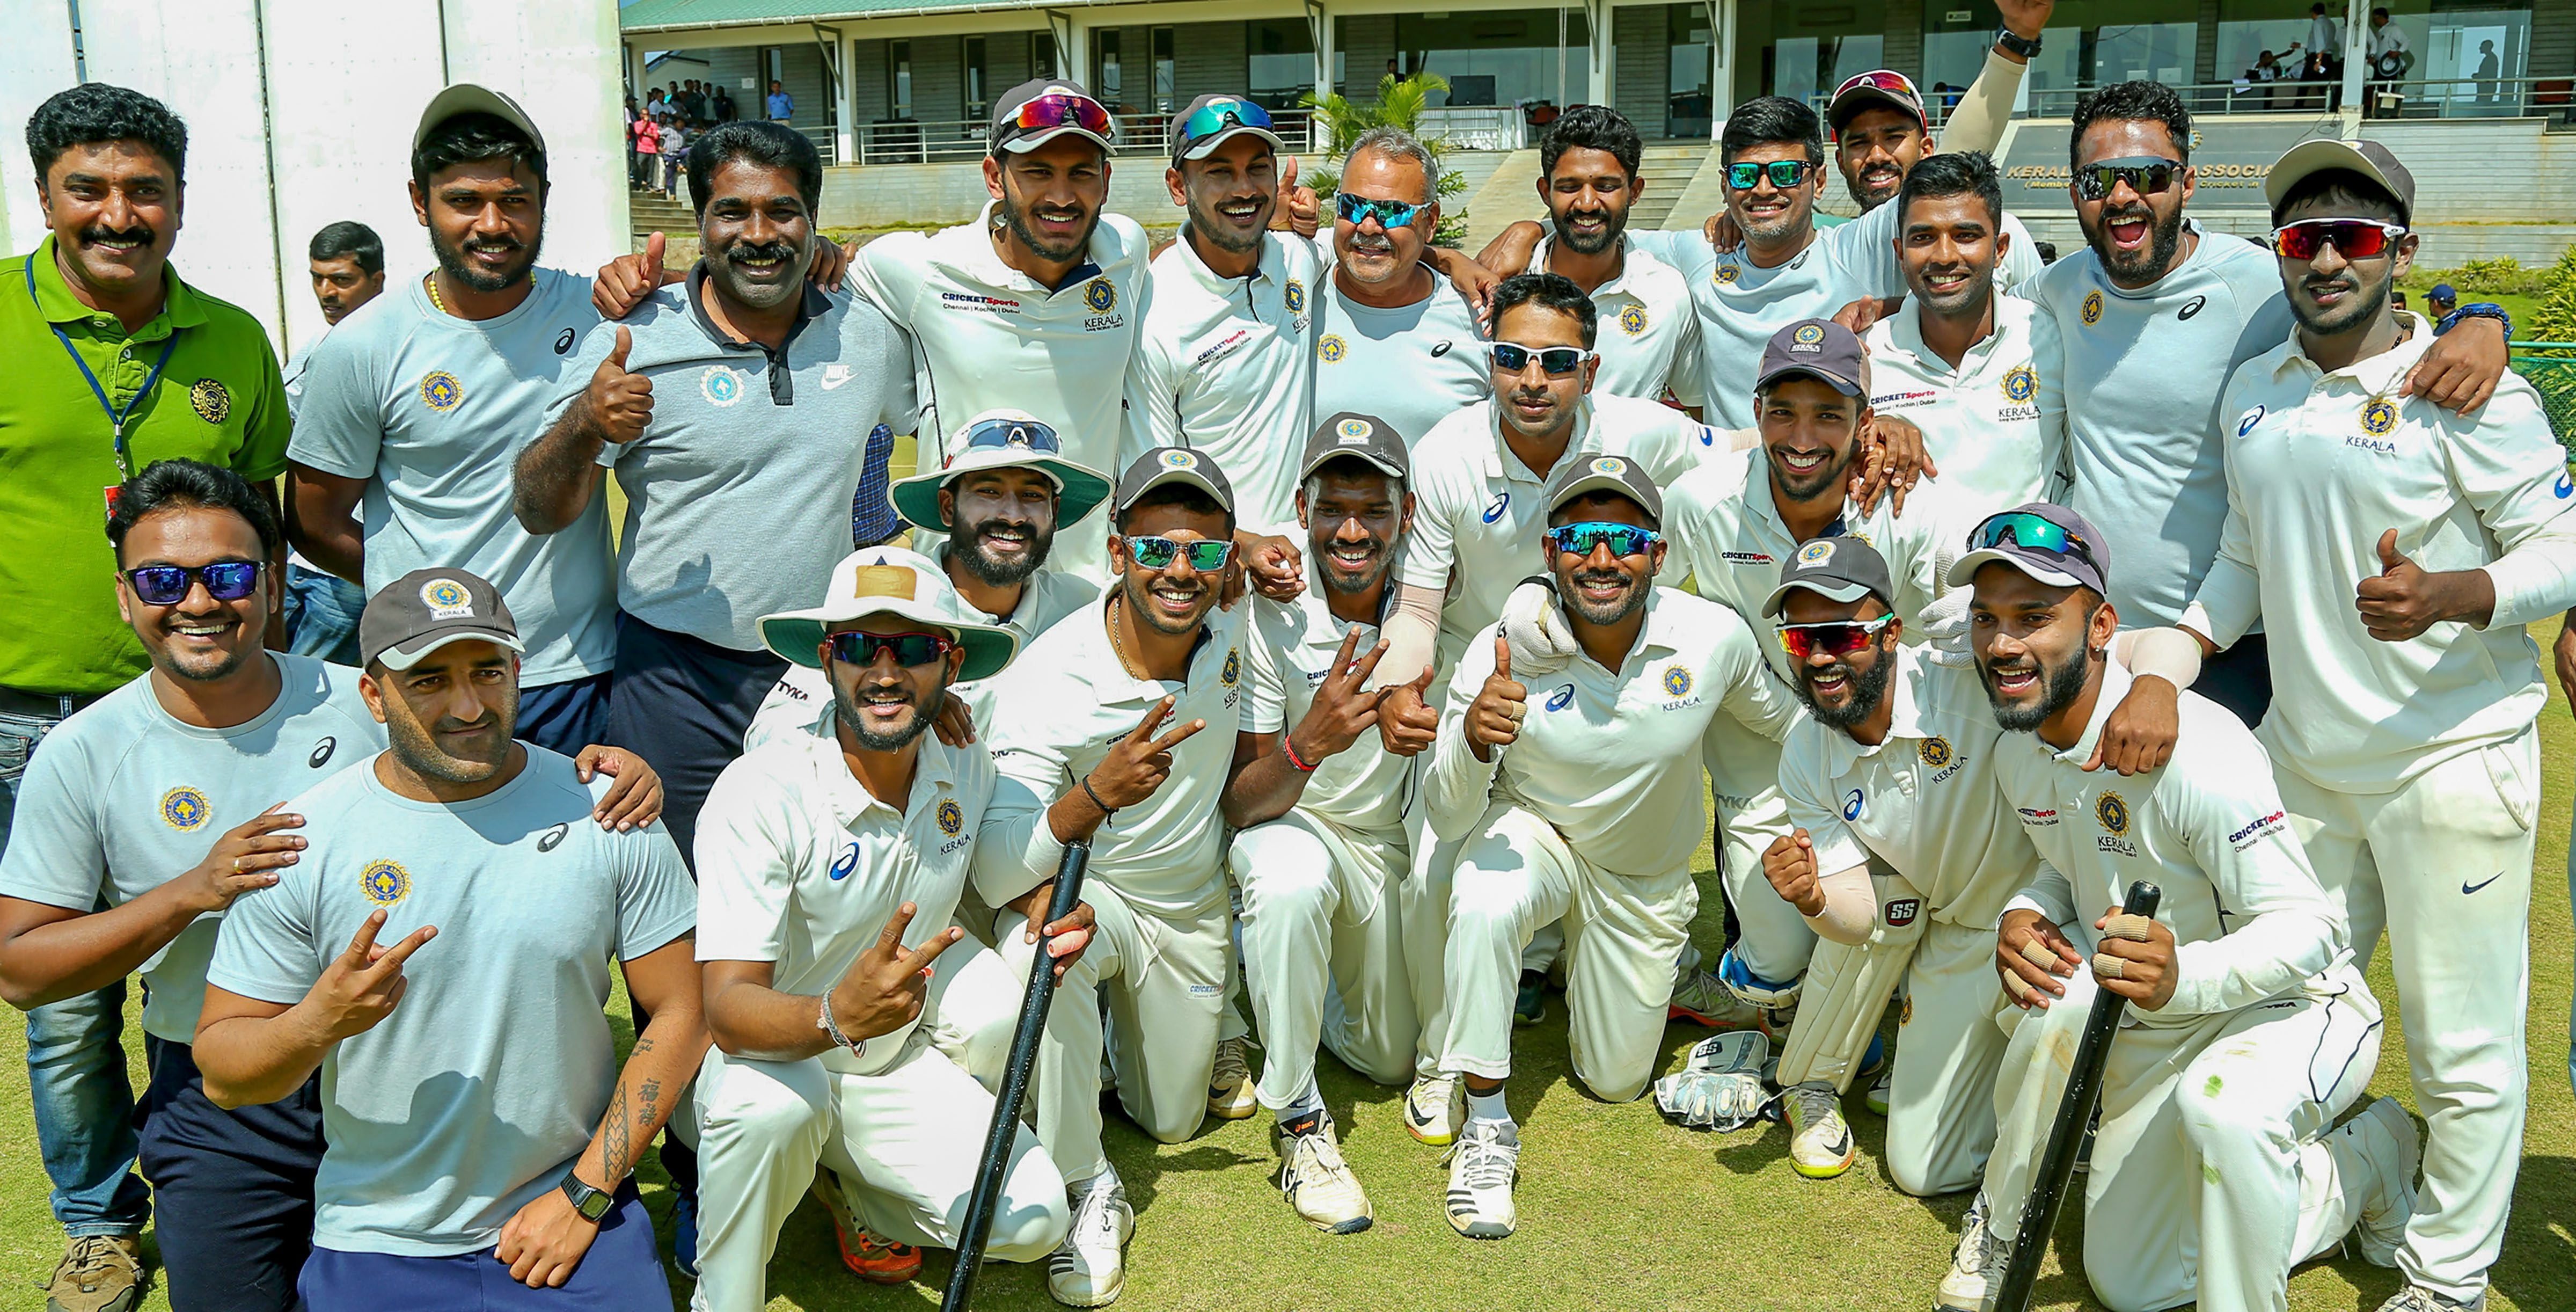 The Kerala team poses for photographs after winning against Gujarat in Wayanad on Thursday.